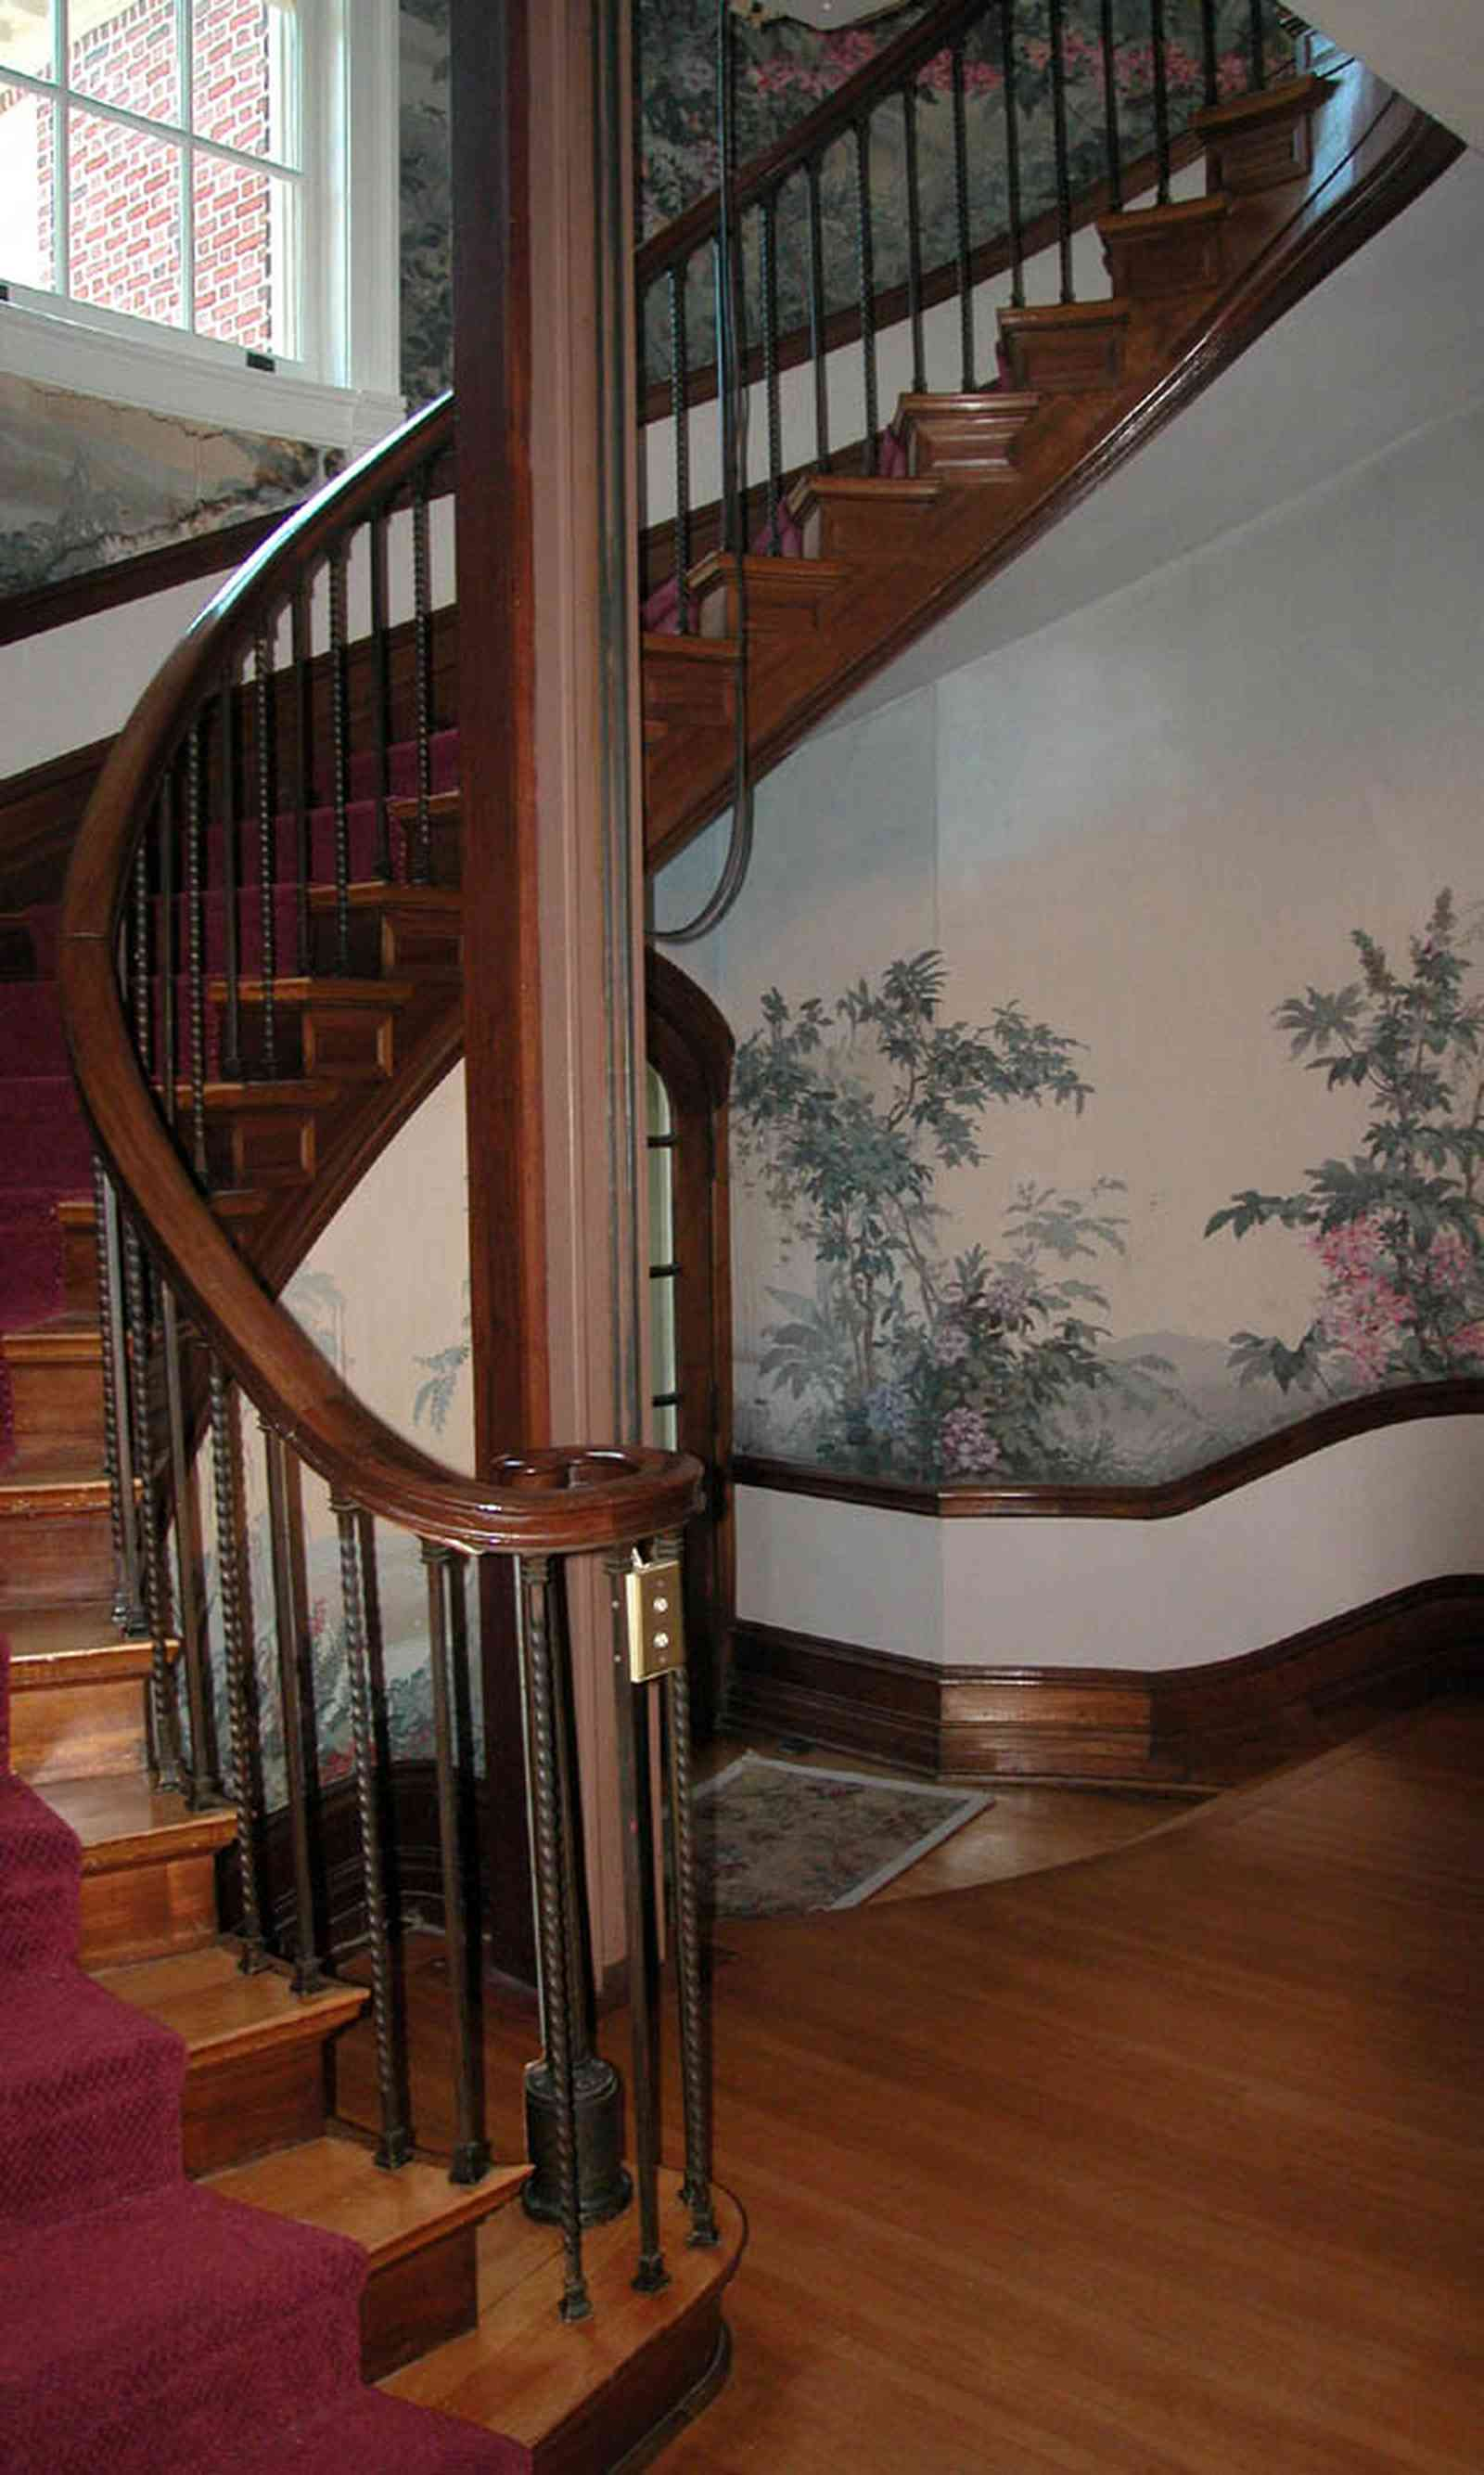 North-Hill:-105-West-Gonzales-Street_29.jpg:  grand foyer, oriental rug, spiral staircase, chandelier, hardwood floors, french colonial architecture, handpainted wallpaper